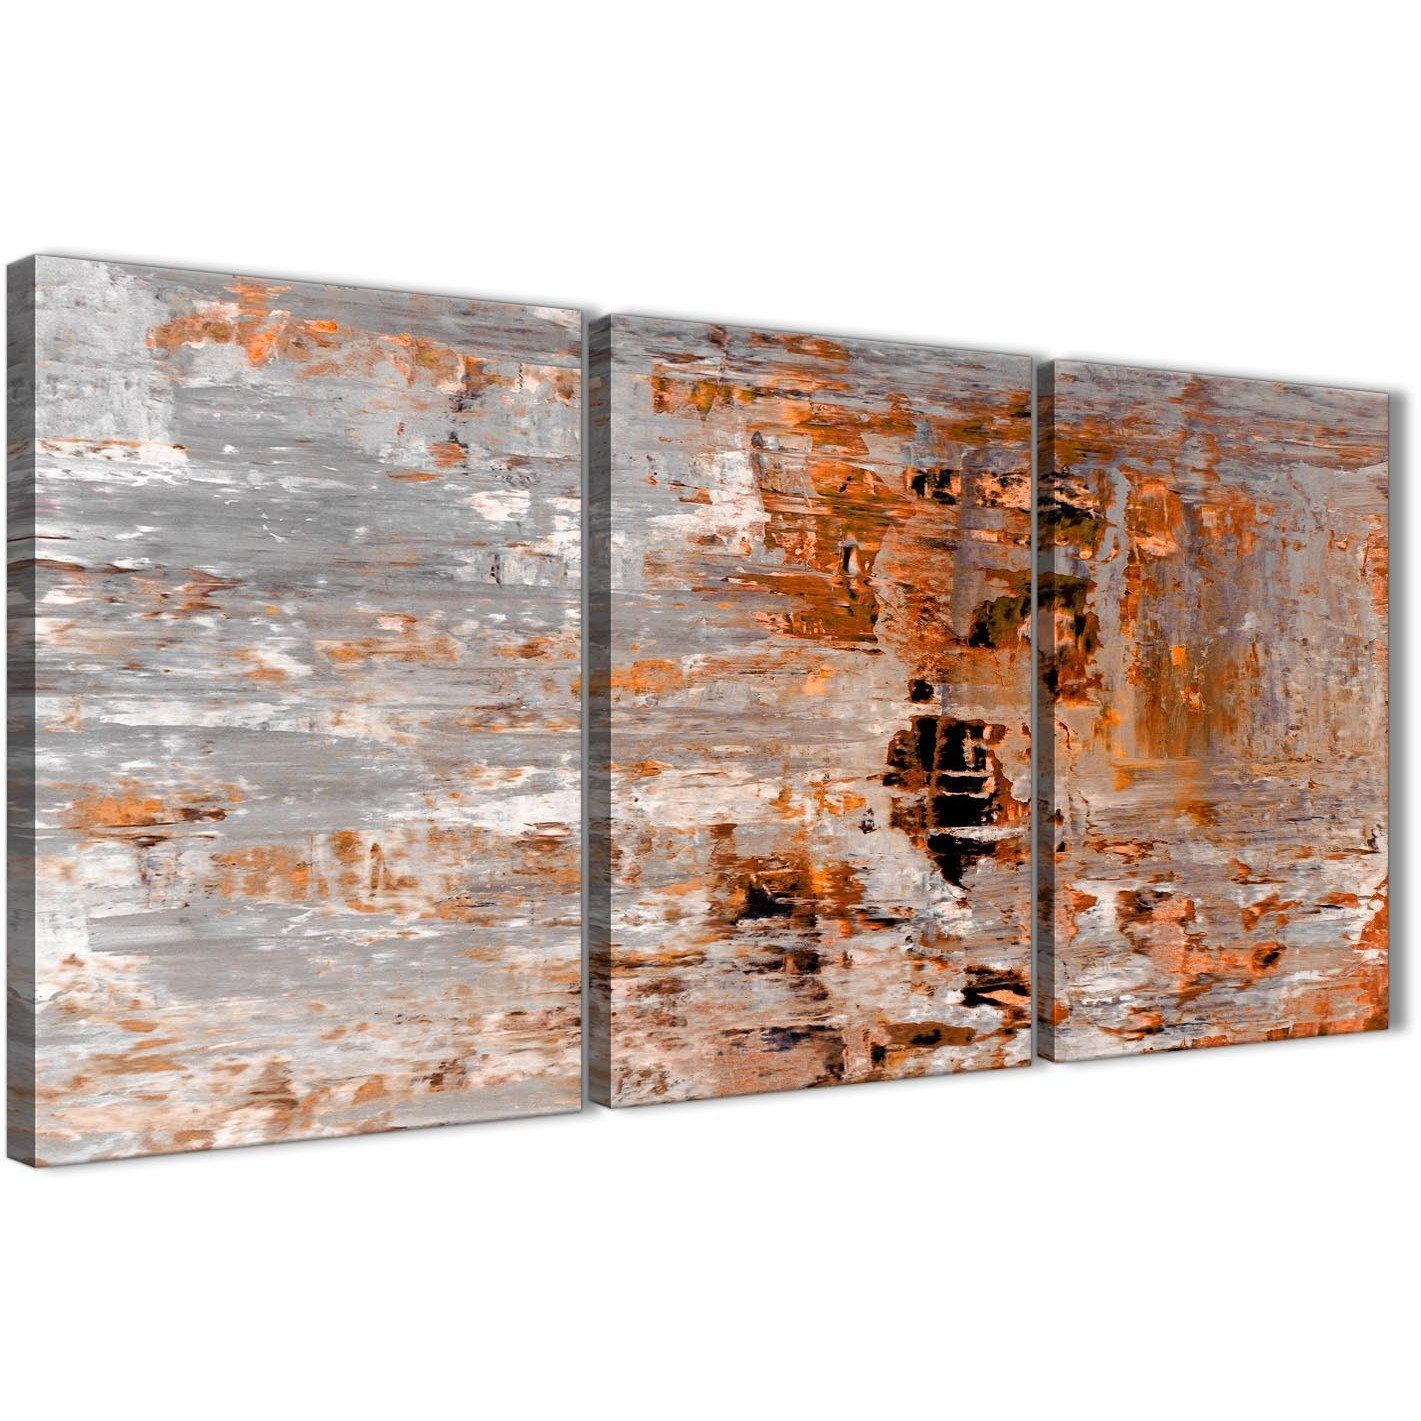 3 Panel Burnt Orange Grey Painting Dining Room Canvas Wall Art Decor Intended For Recent Orange Wall Art (Gallery 8 of 20)